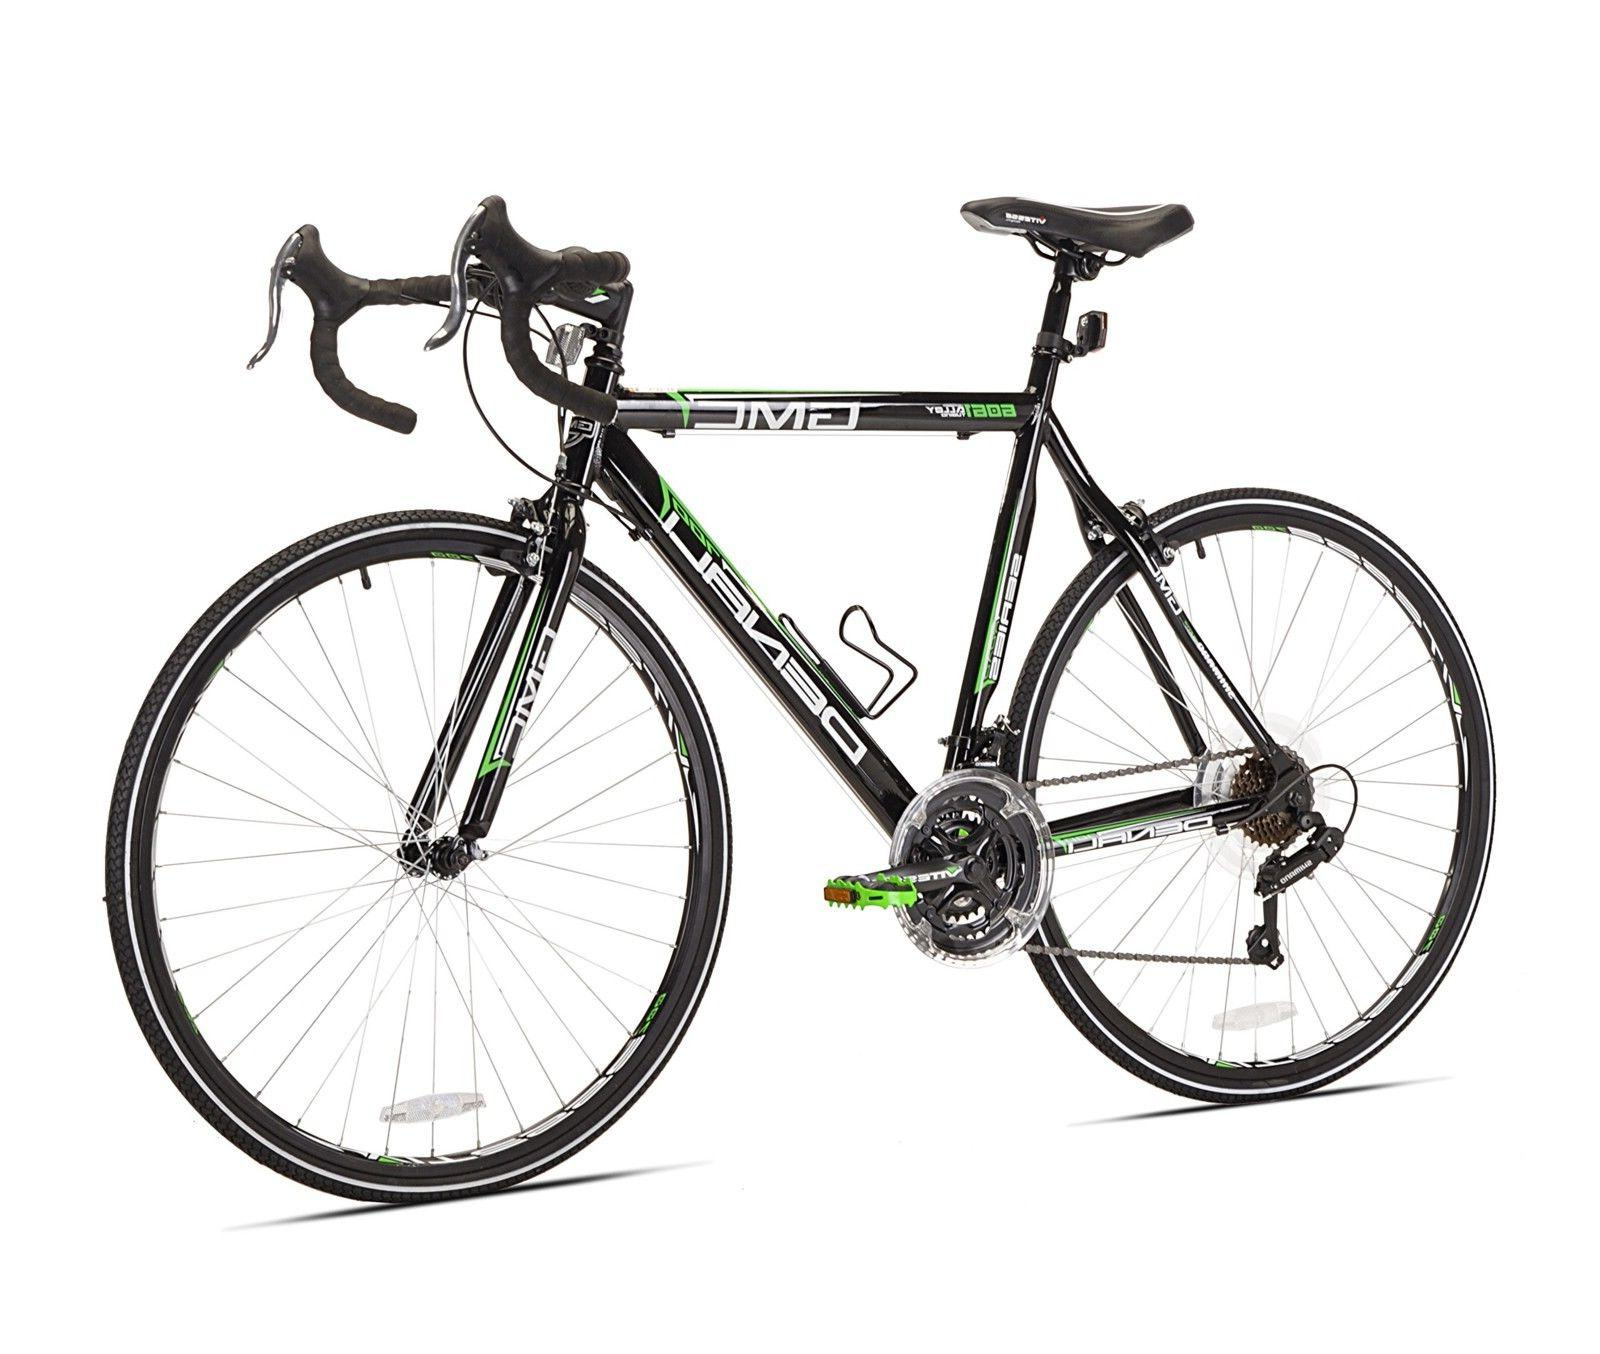 GMC Denali 21-Speed Road Bike, Black/Green, 20-Inch/Small, H